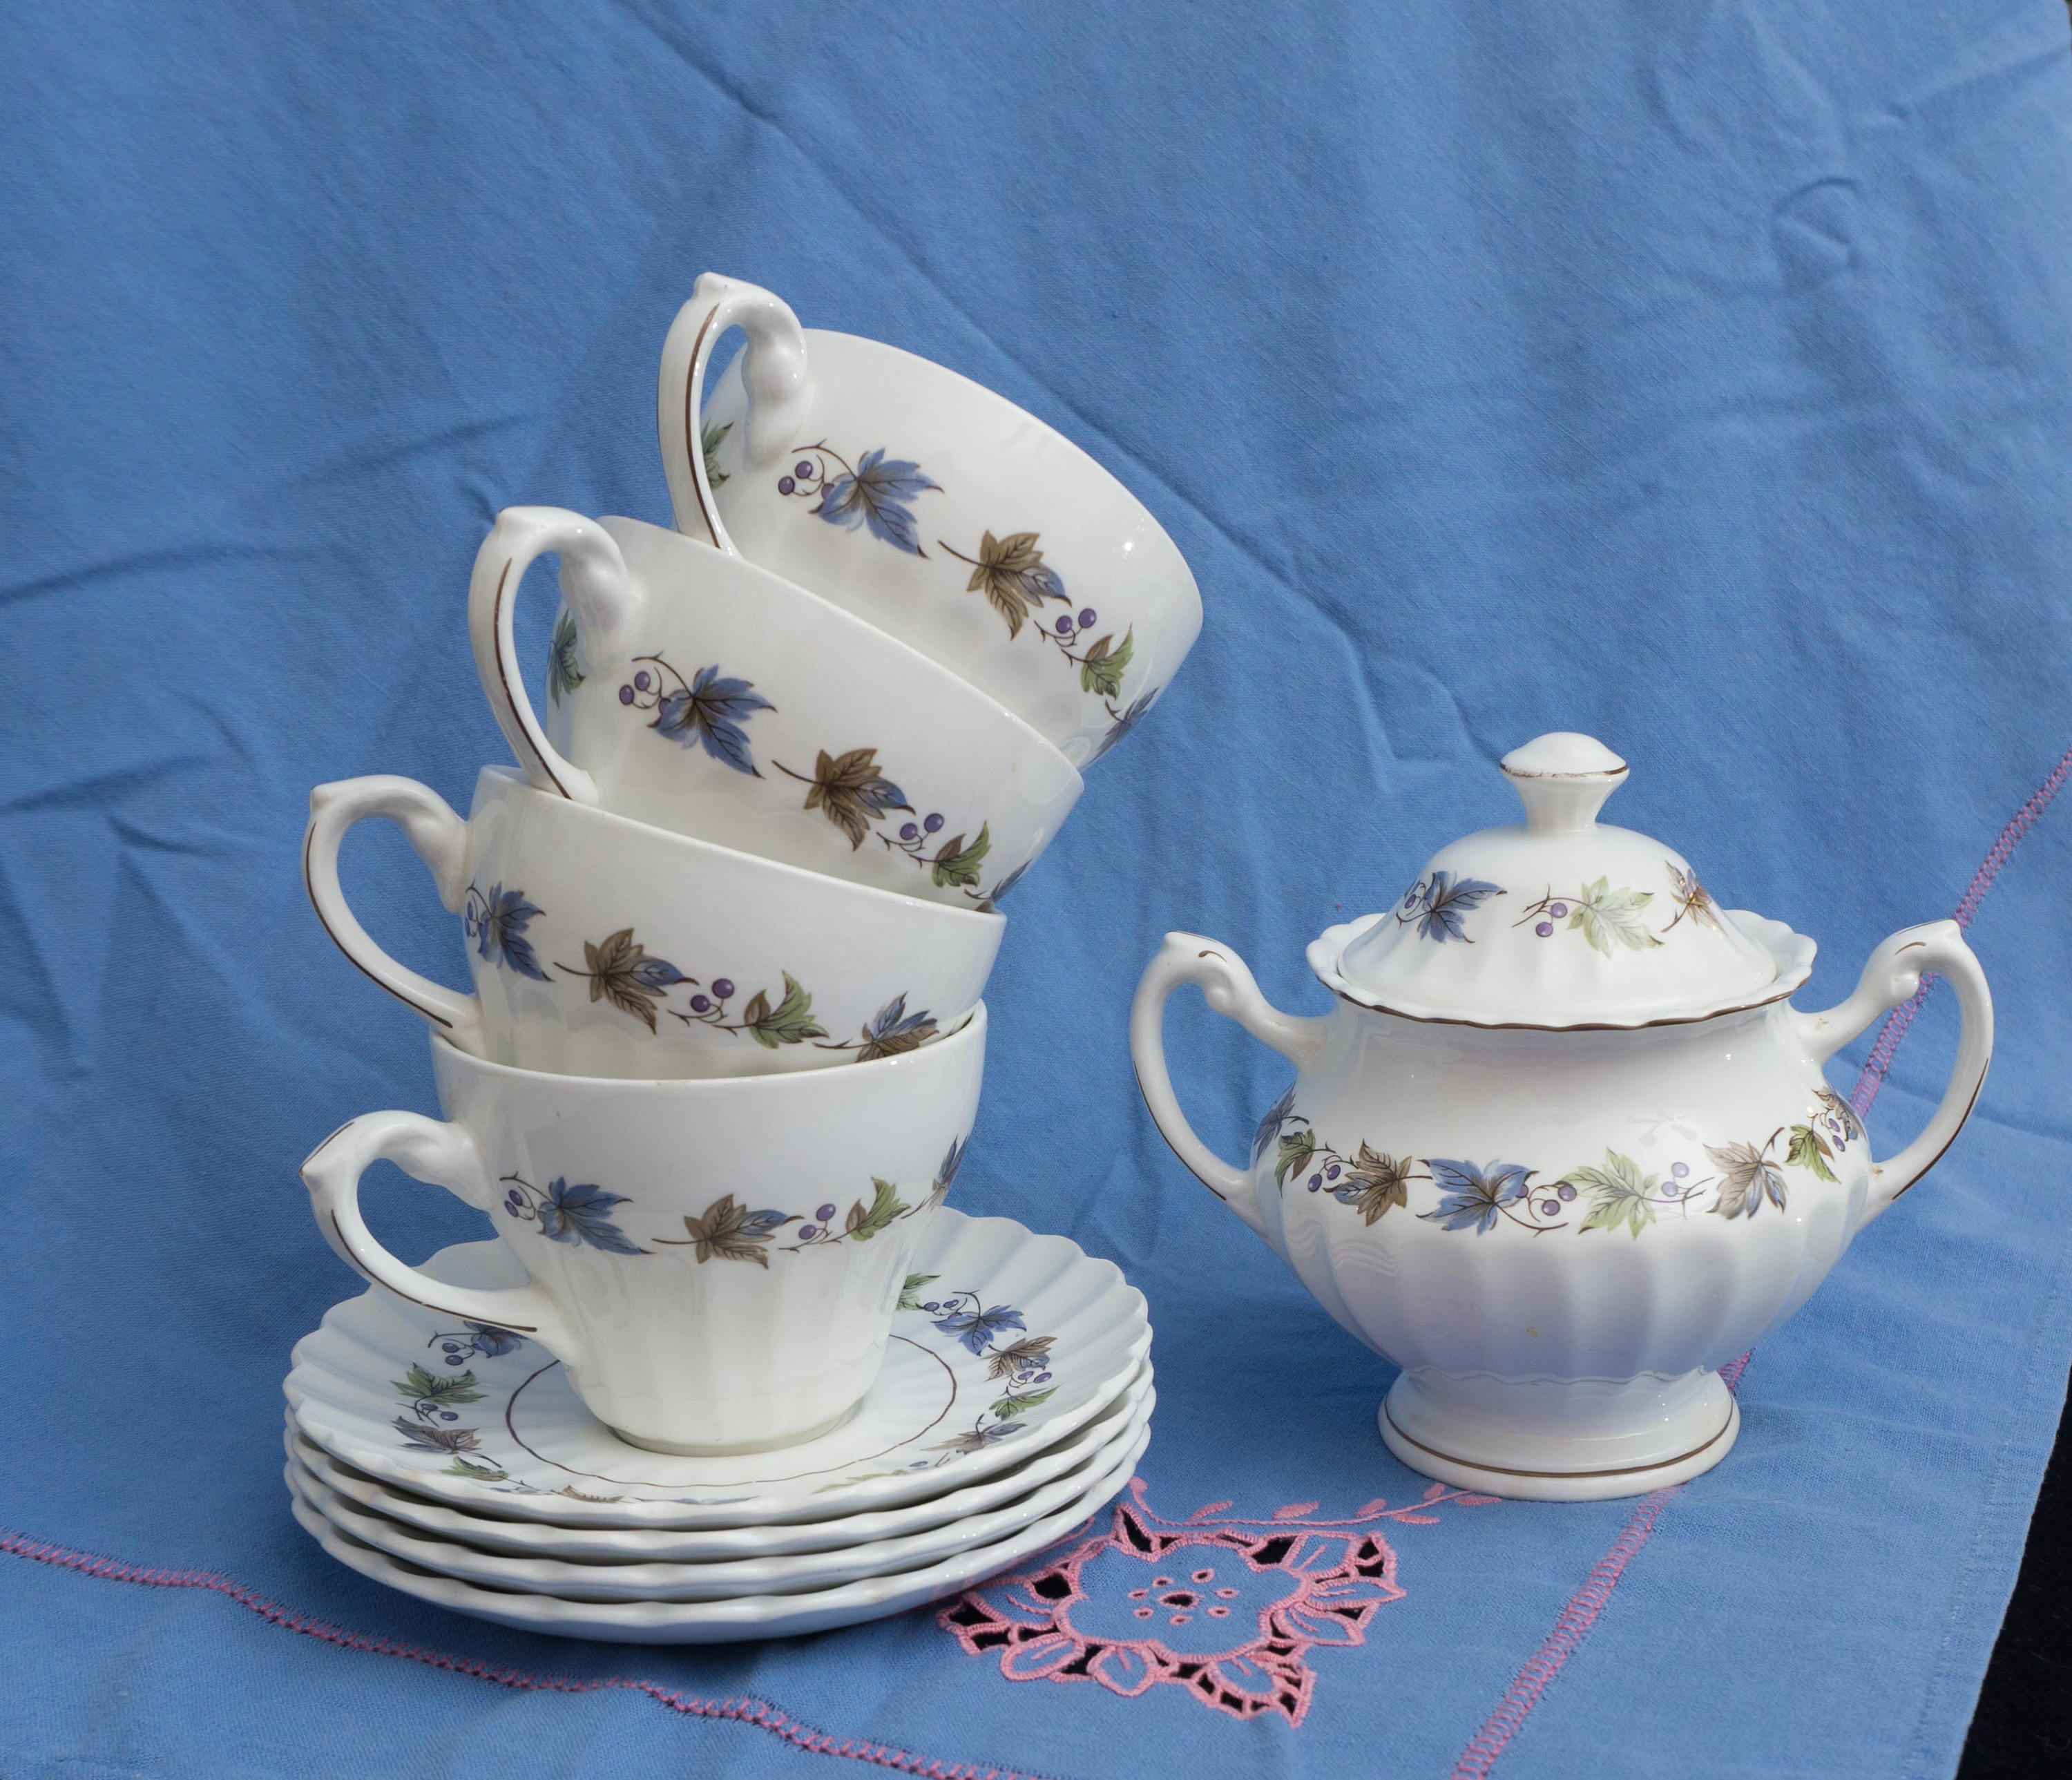 TEN Pieces Vintage J and G Meakin Leaves Sugar Bowl Creamer, 4 Cups and Saucers